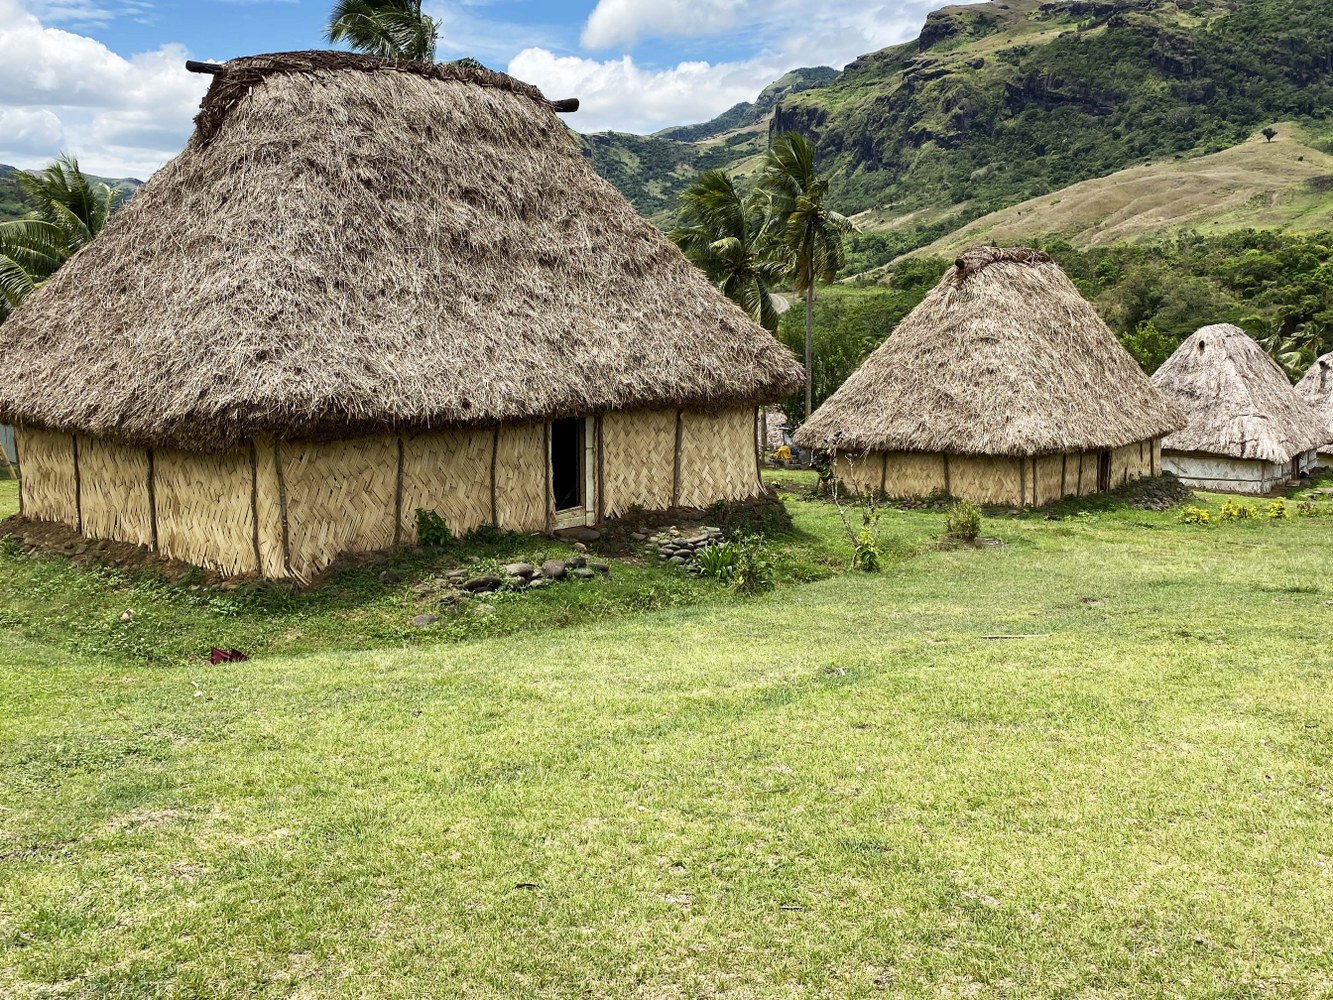 Typical Fijian neighbours with houses close to each other in the local communal area called the village